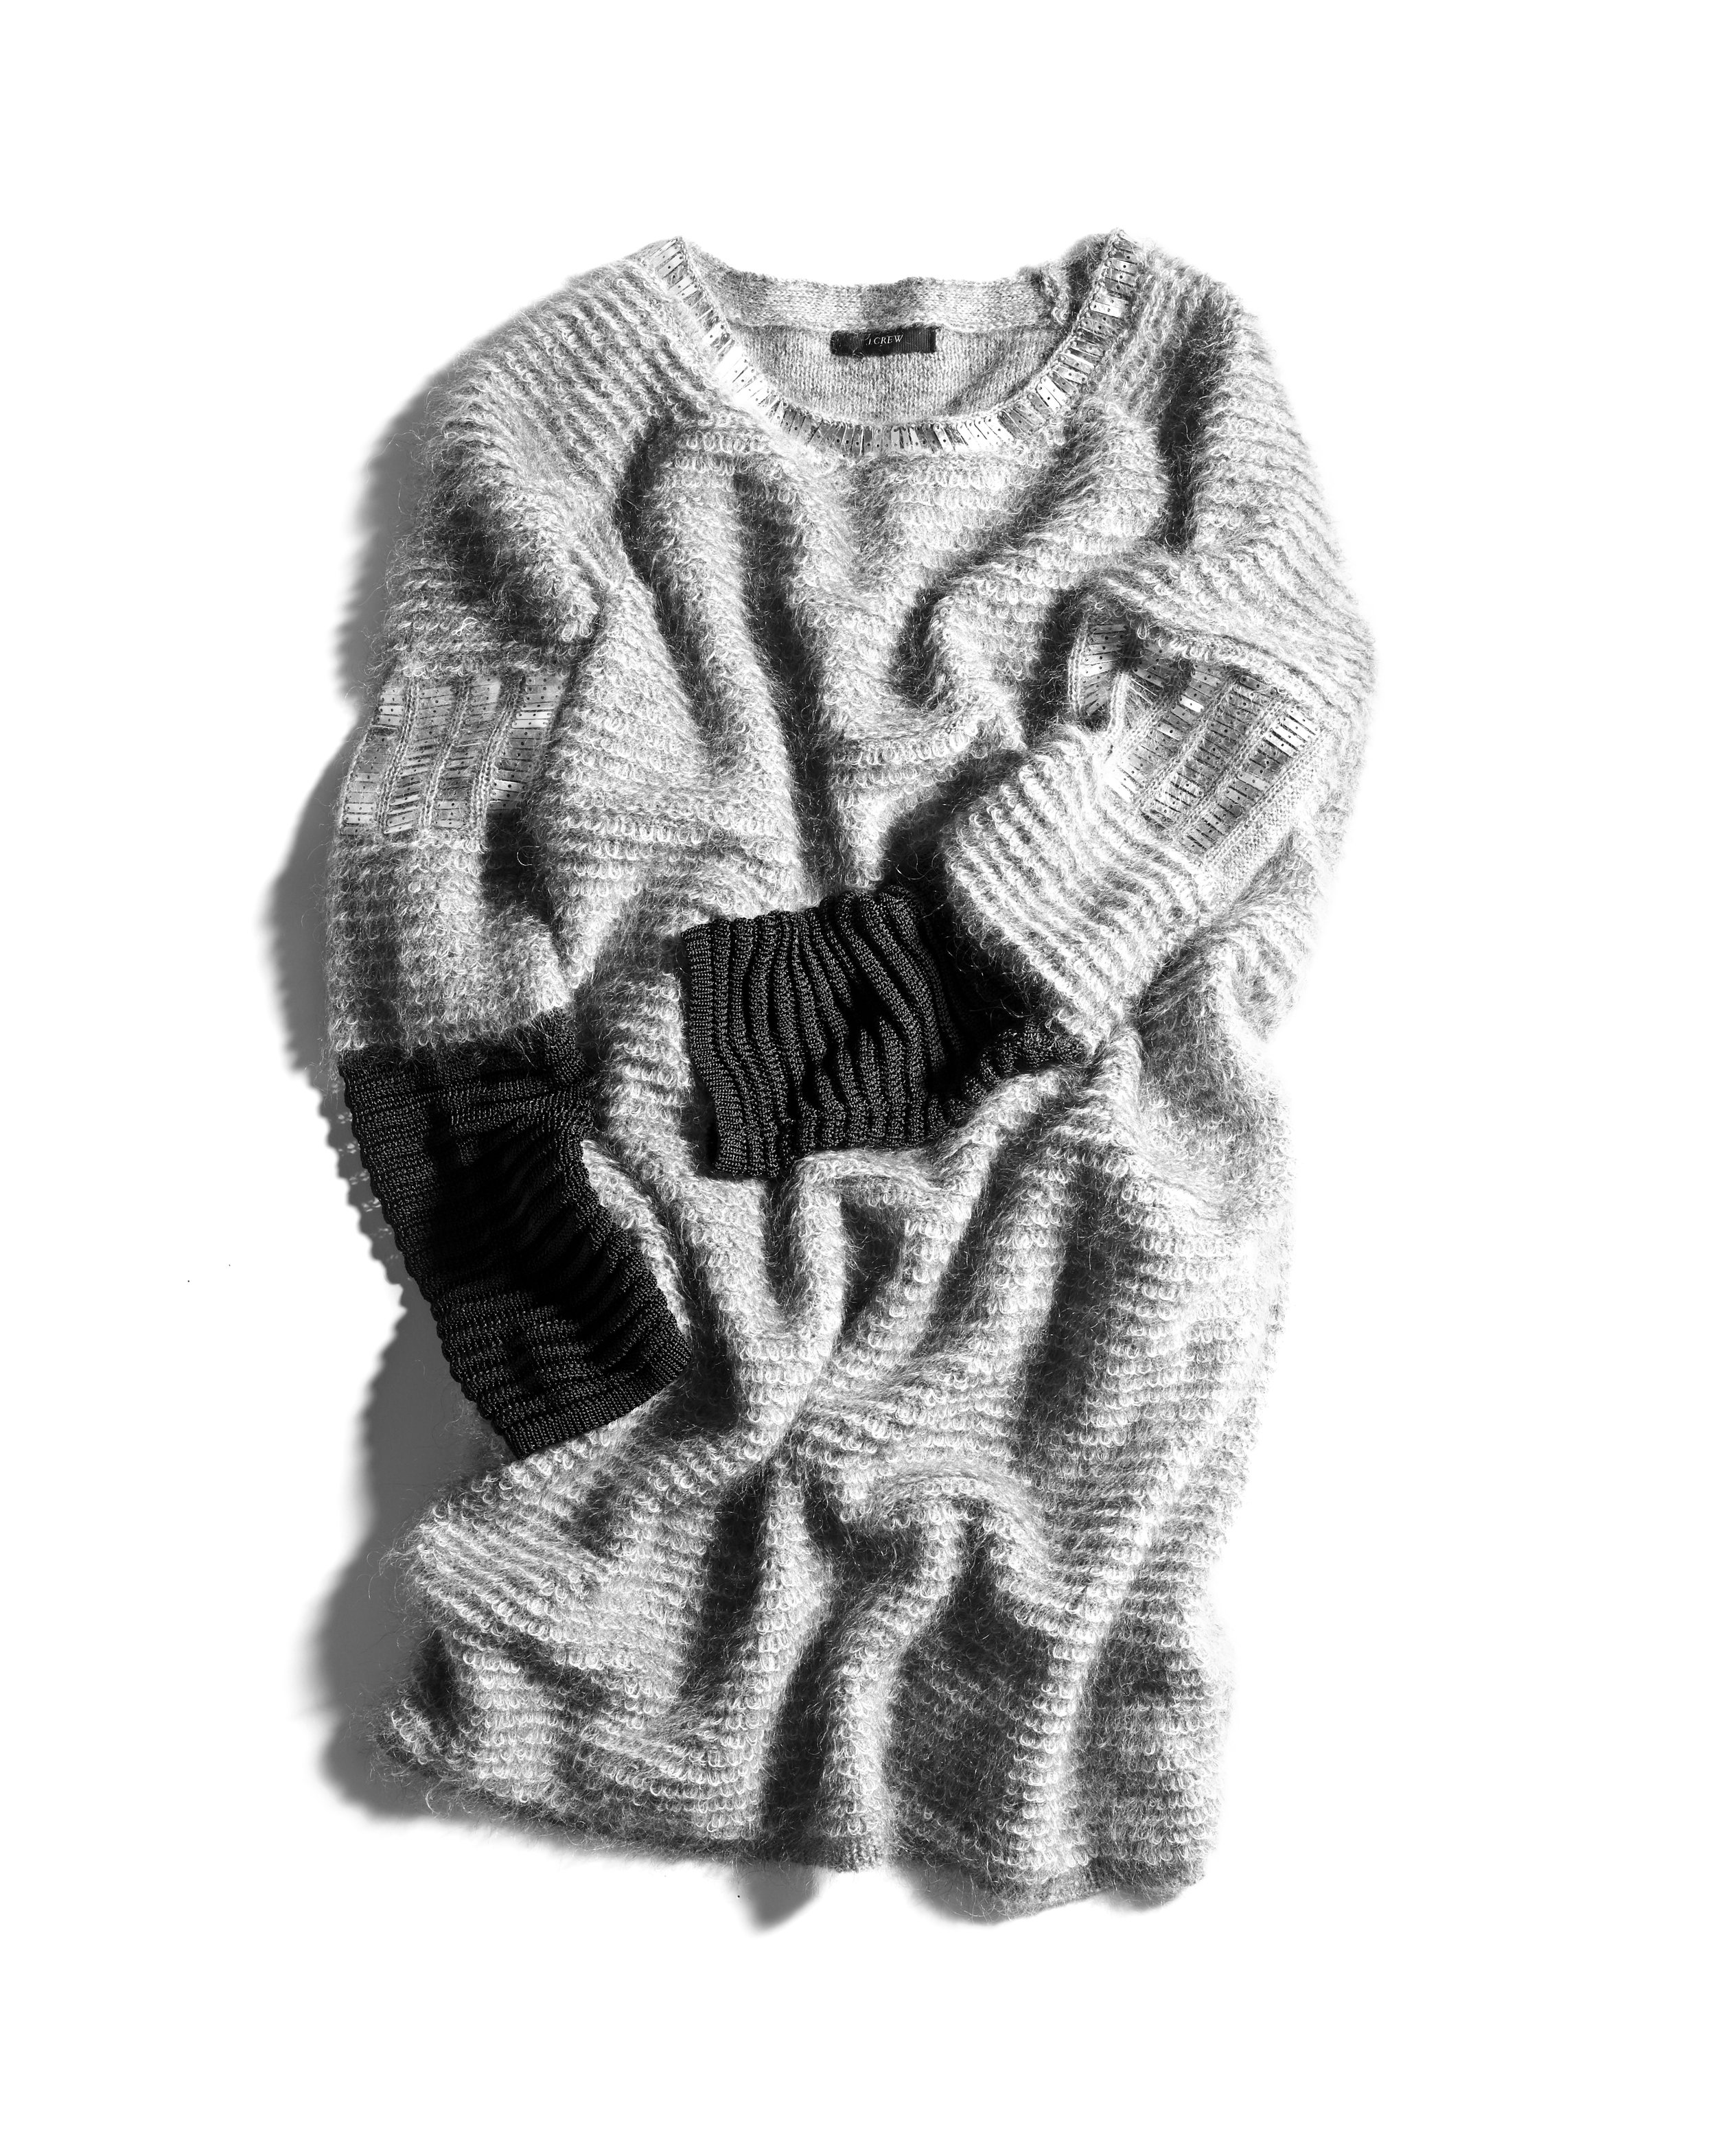 CFDA_jcrew_sweater_newyorkfashionphotographer.jpg